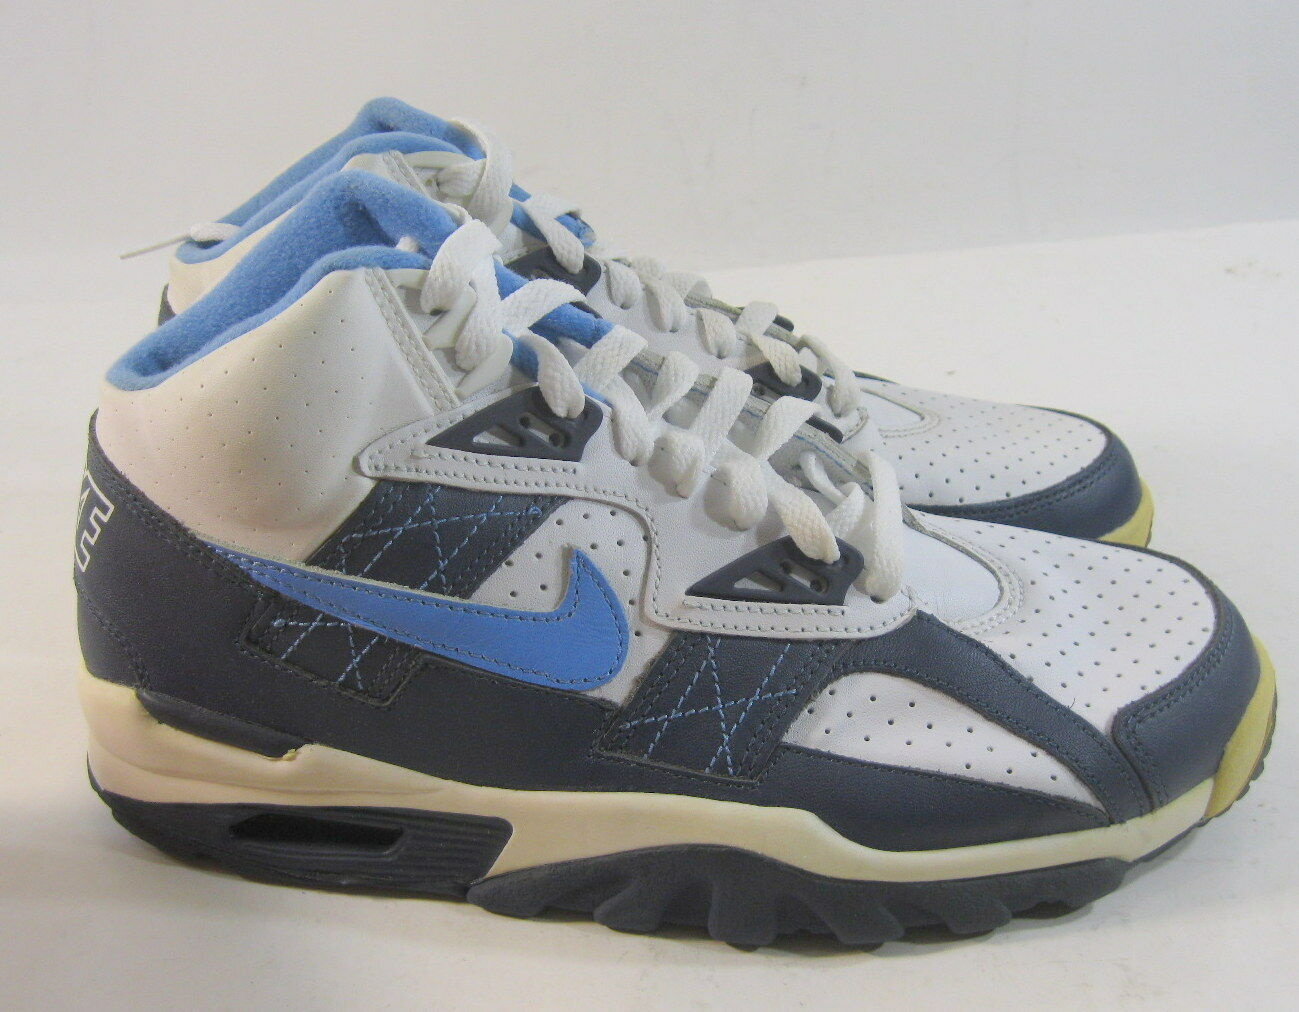 Nike Air Trainer Sc Men Shoes 302346-441 -Size 8.5